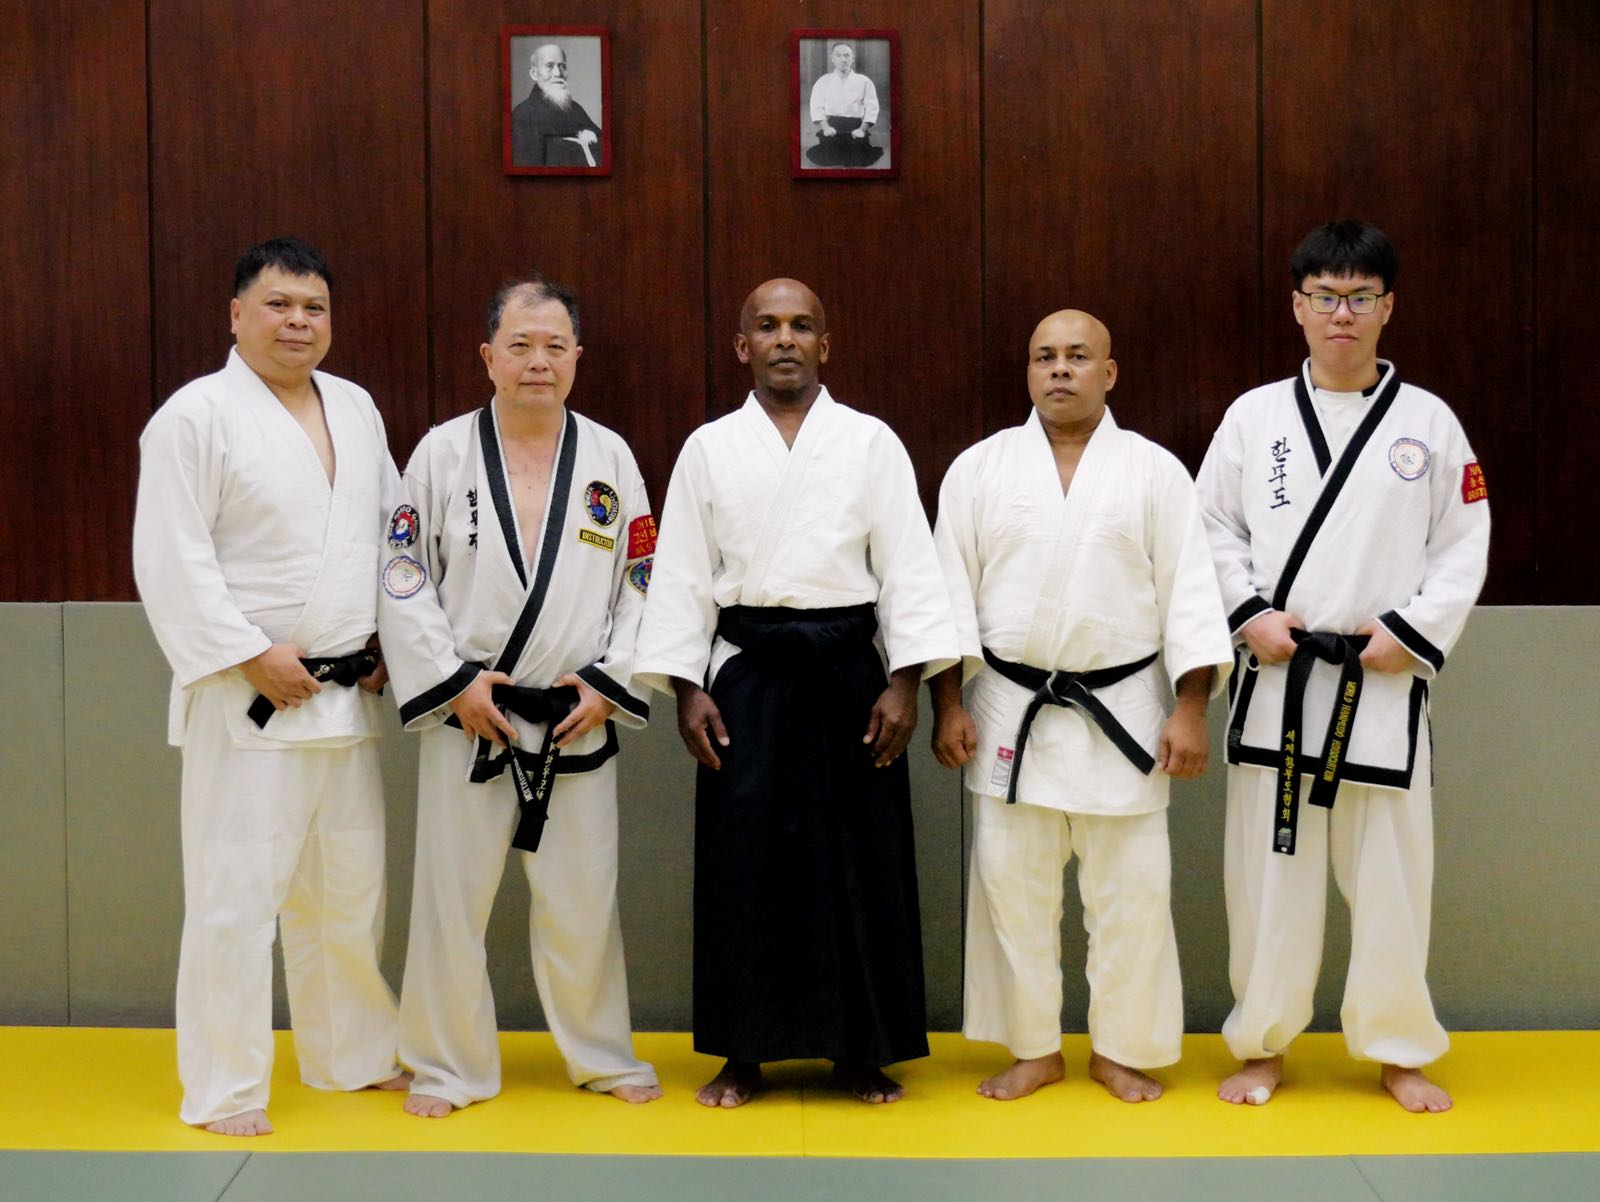 Joe Shihan and Ramlan Ortega Sensei with participants from the Hanmudo Association Singapore